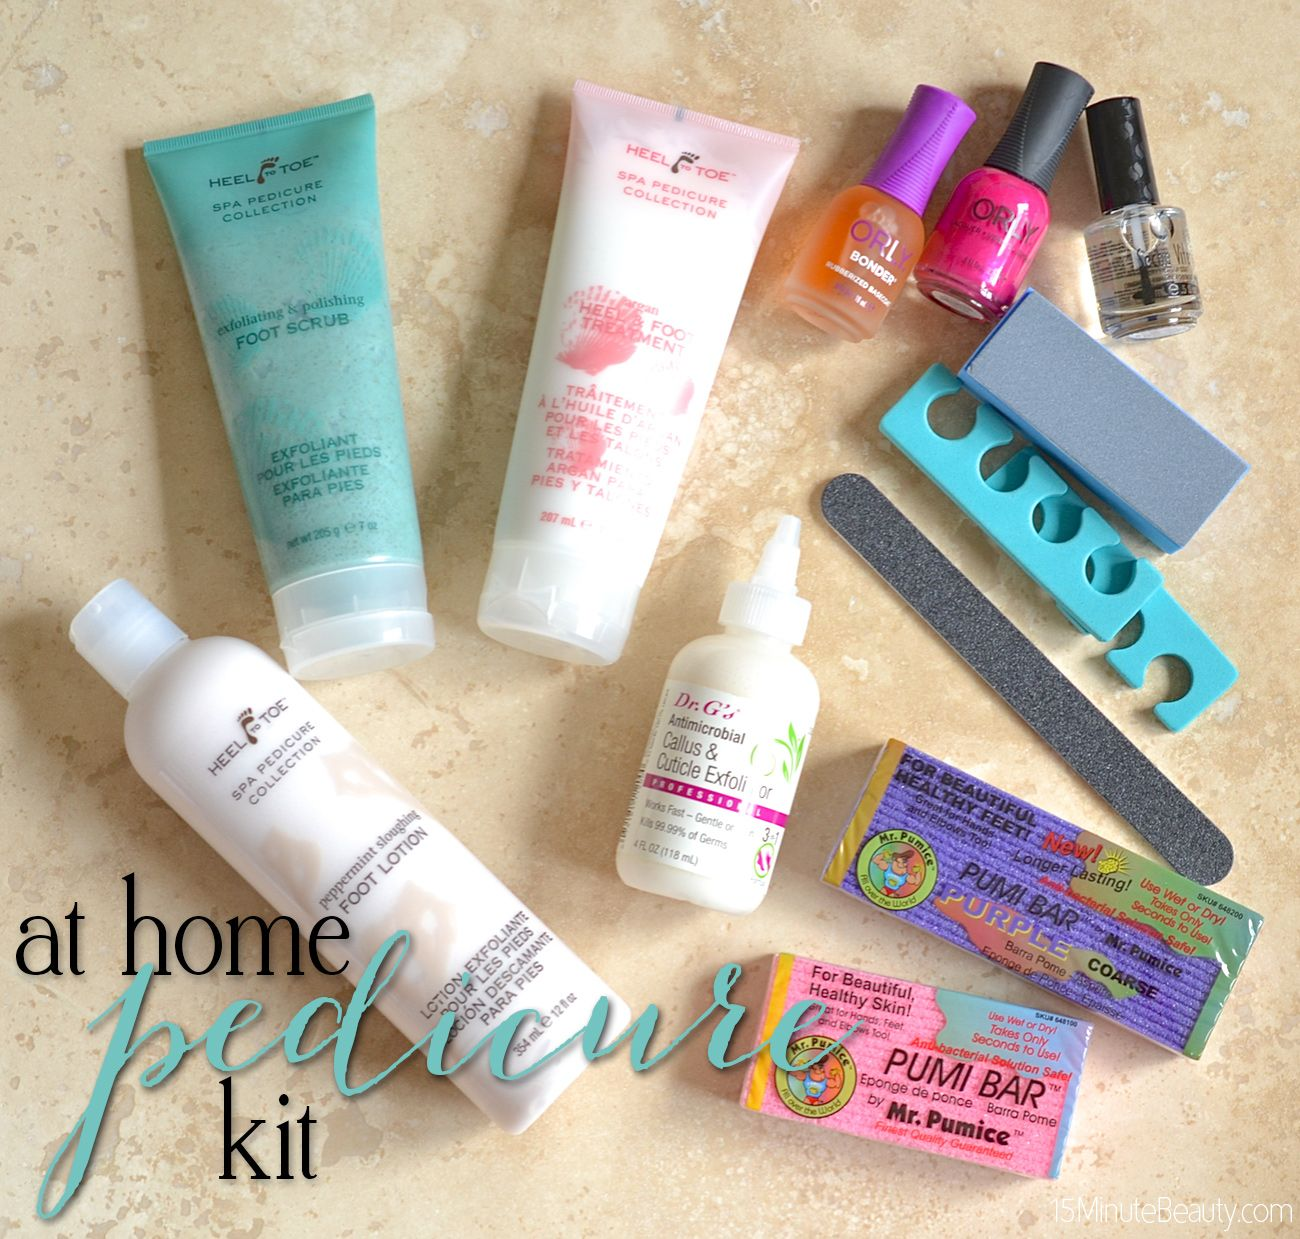 At Home Diy Pedicure Kit Everything You Need Diy Pedicure